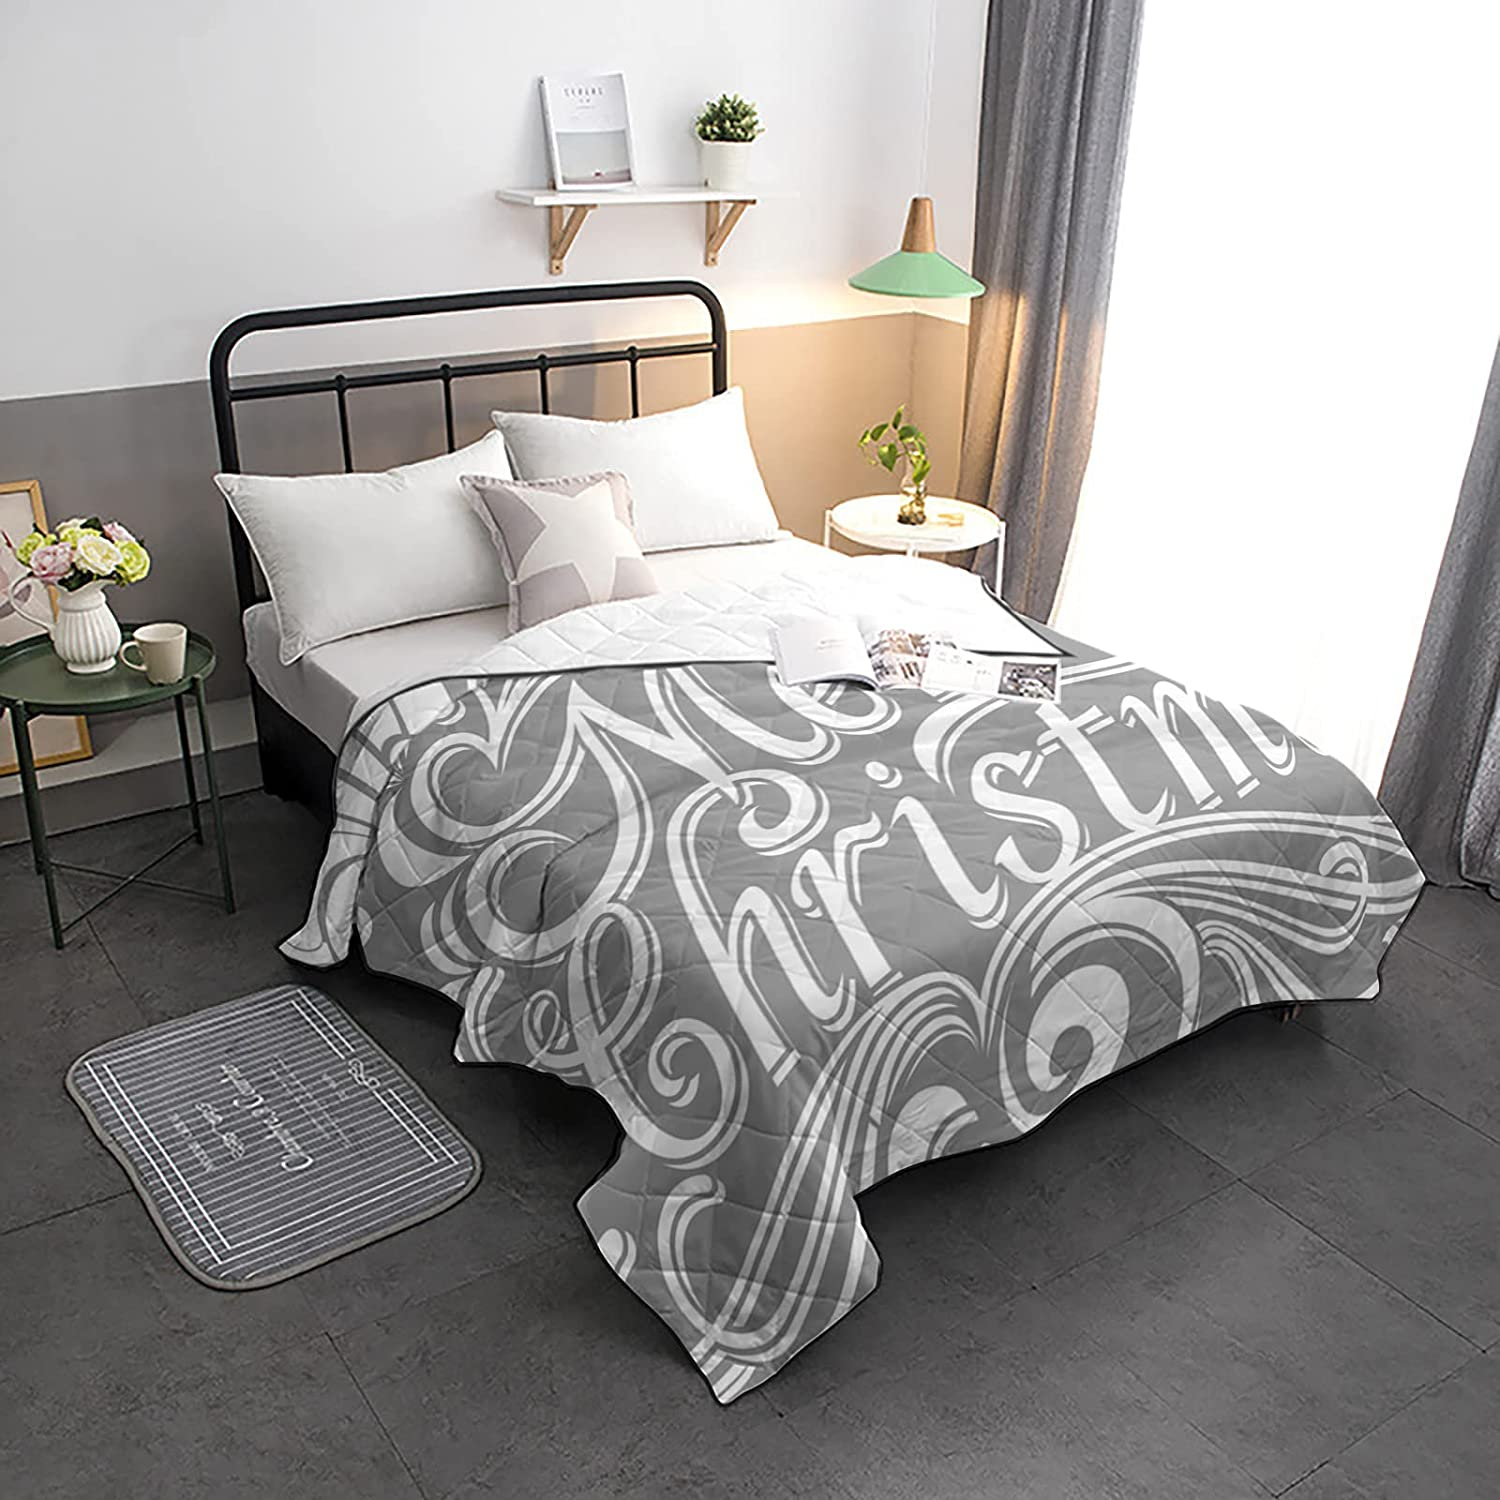 HELLOWINK Bedding Comforter Duvet Lig sold Direct stock discount out King Size-Soft Oversized